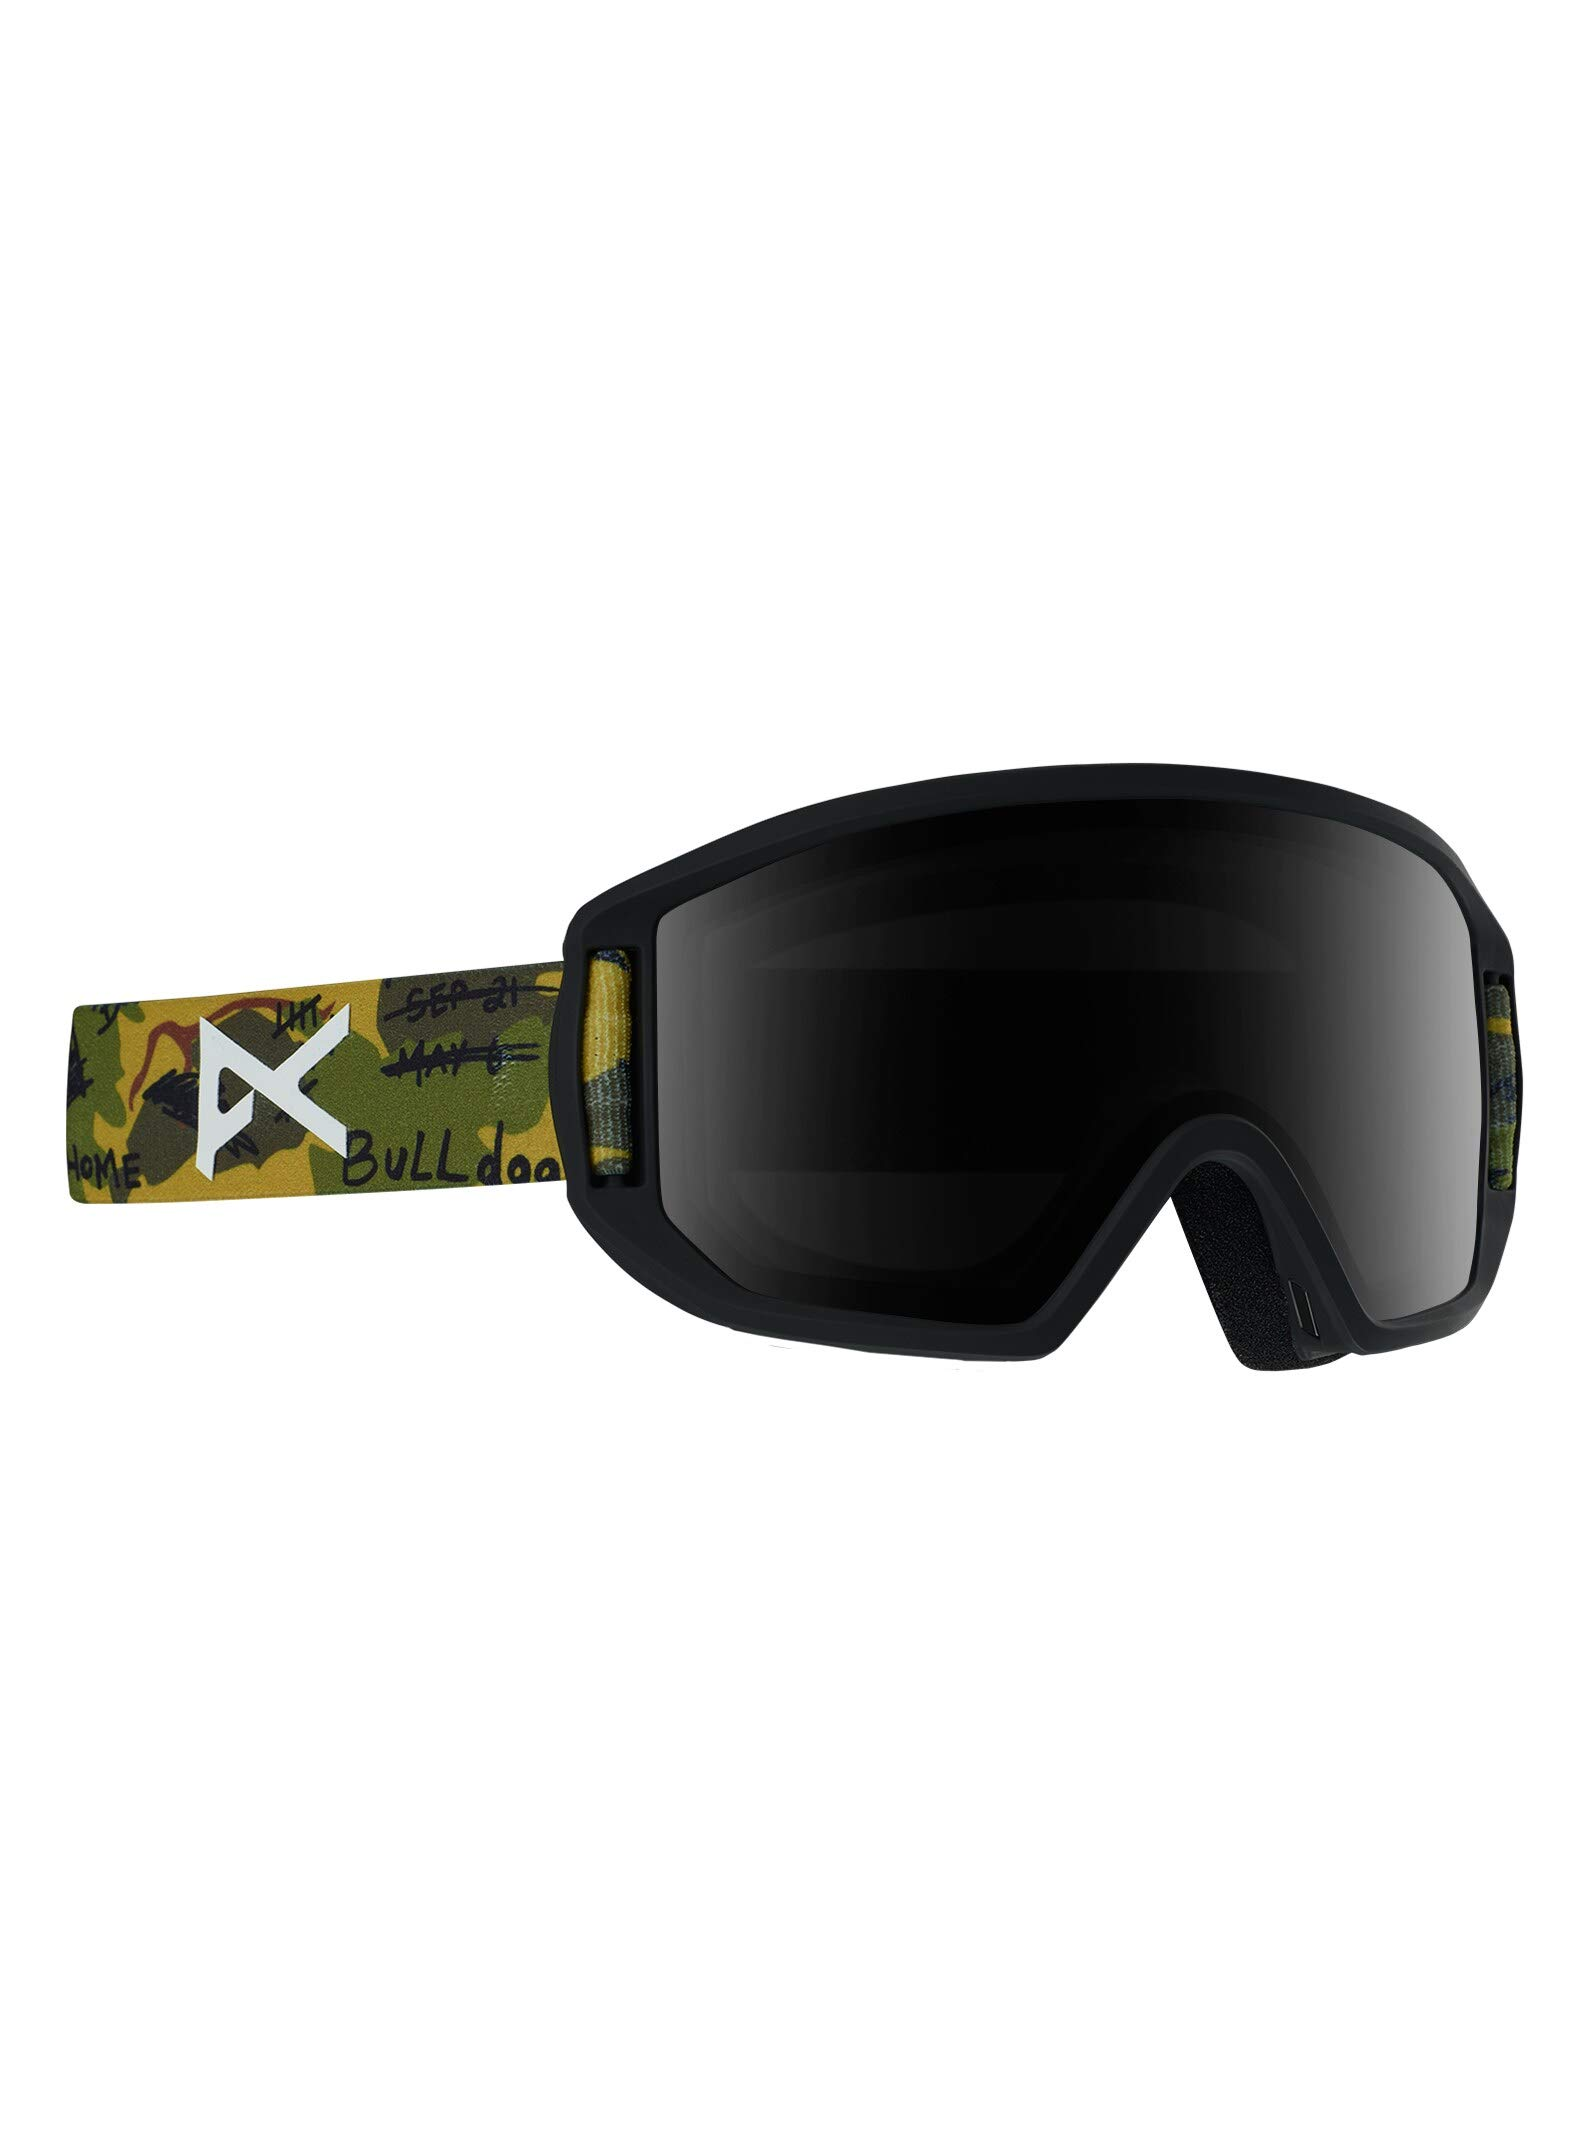 Anon Kids' Relapse Jr. Snowboard/Ski Goggle with MFI Mask (Available in Asian Fit)